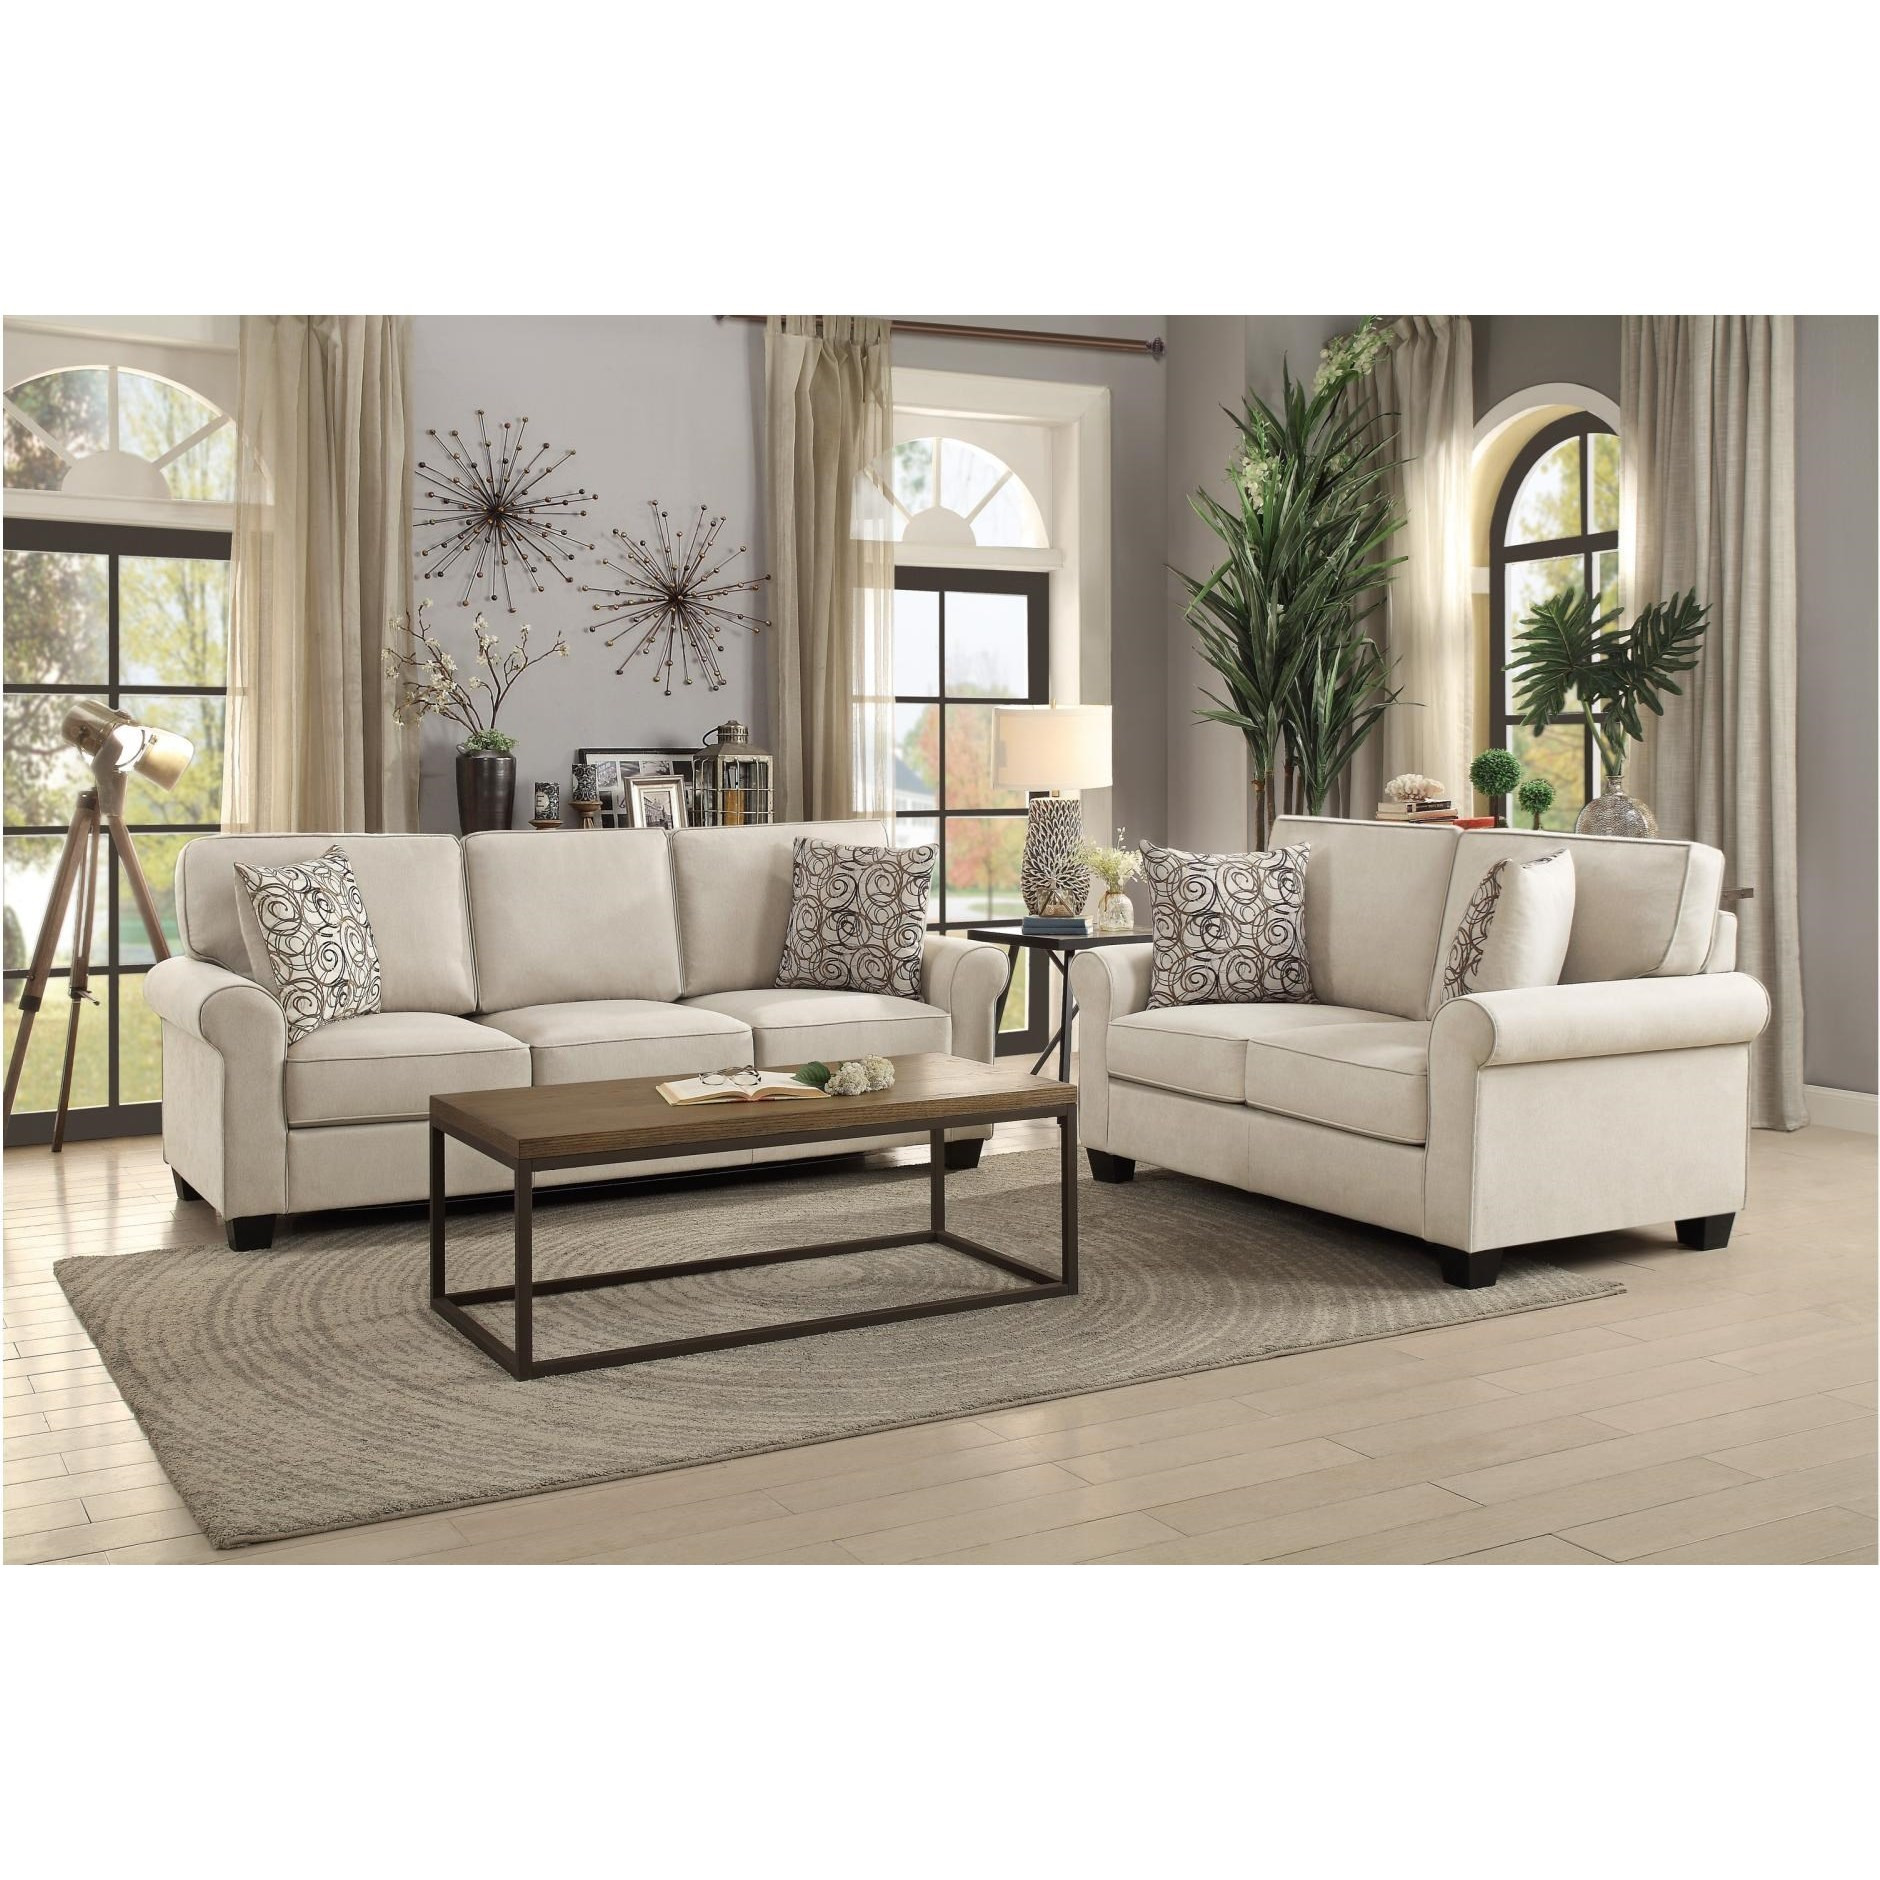 Selkirk Living Room Group by Homelegance at Carolina Direct